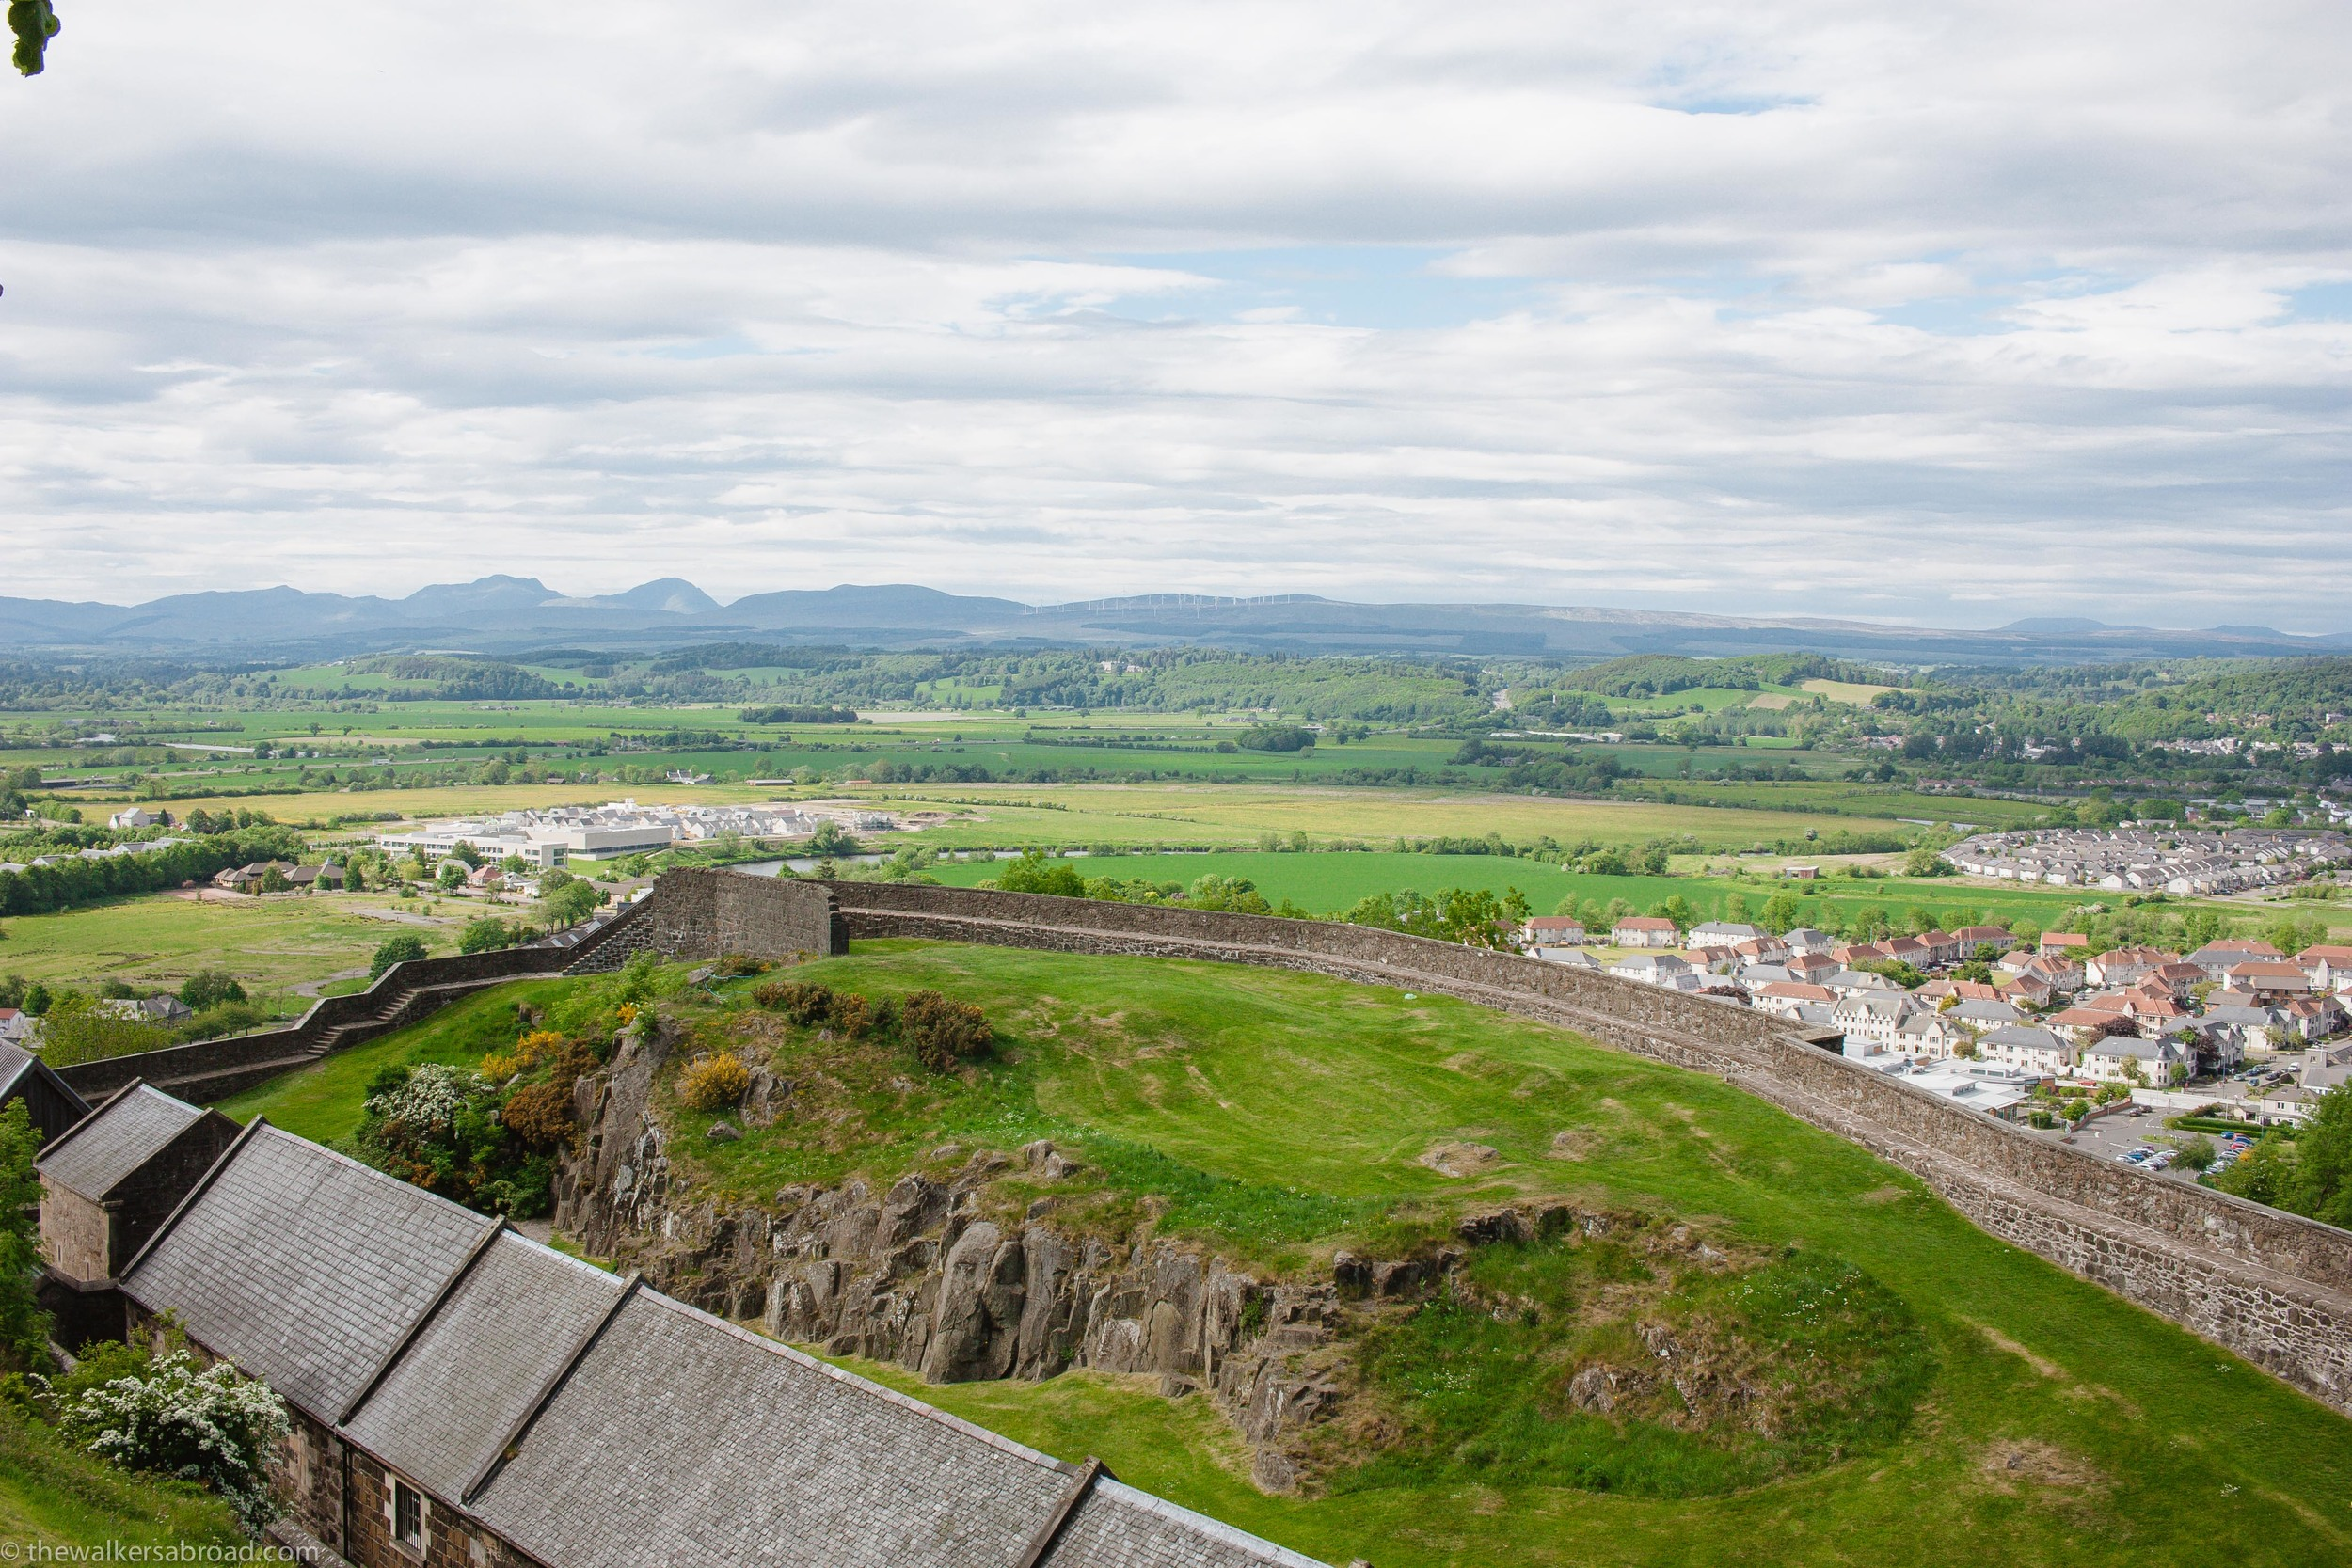 Looking over Stirling and surrounding areas.